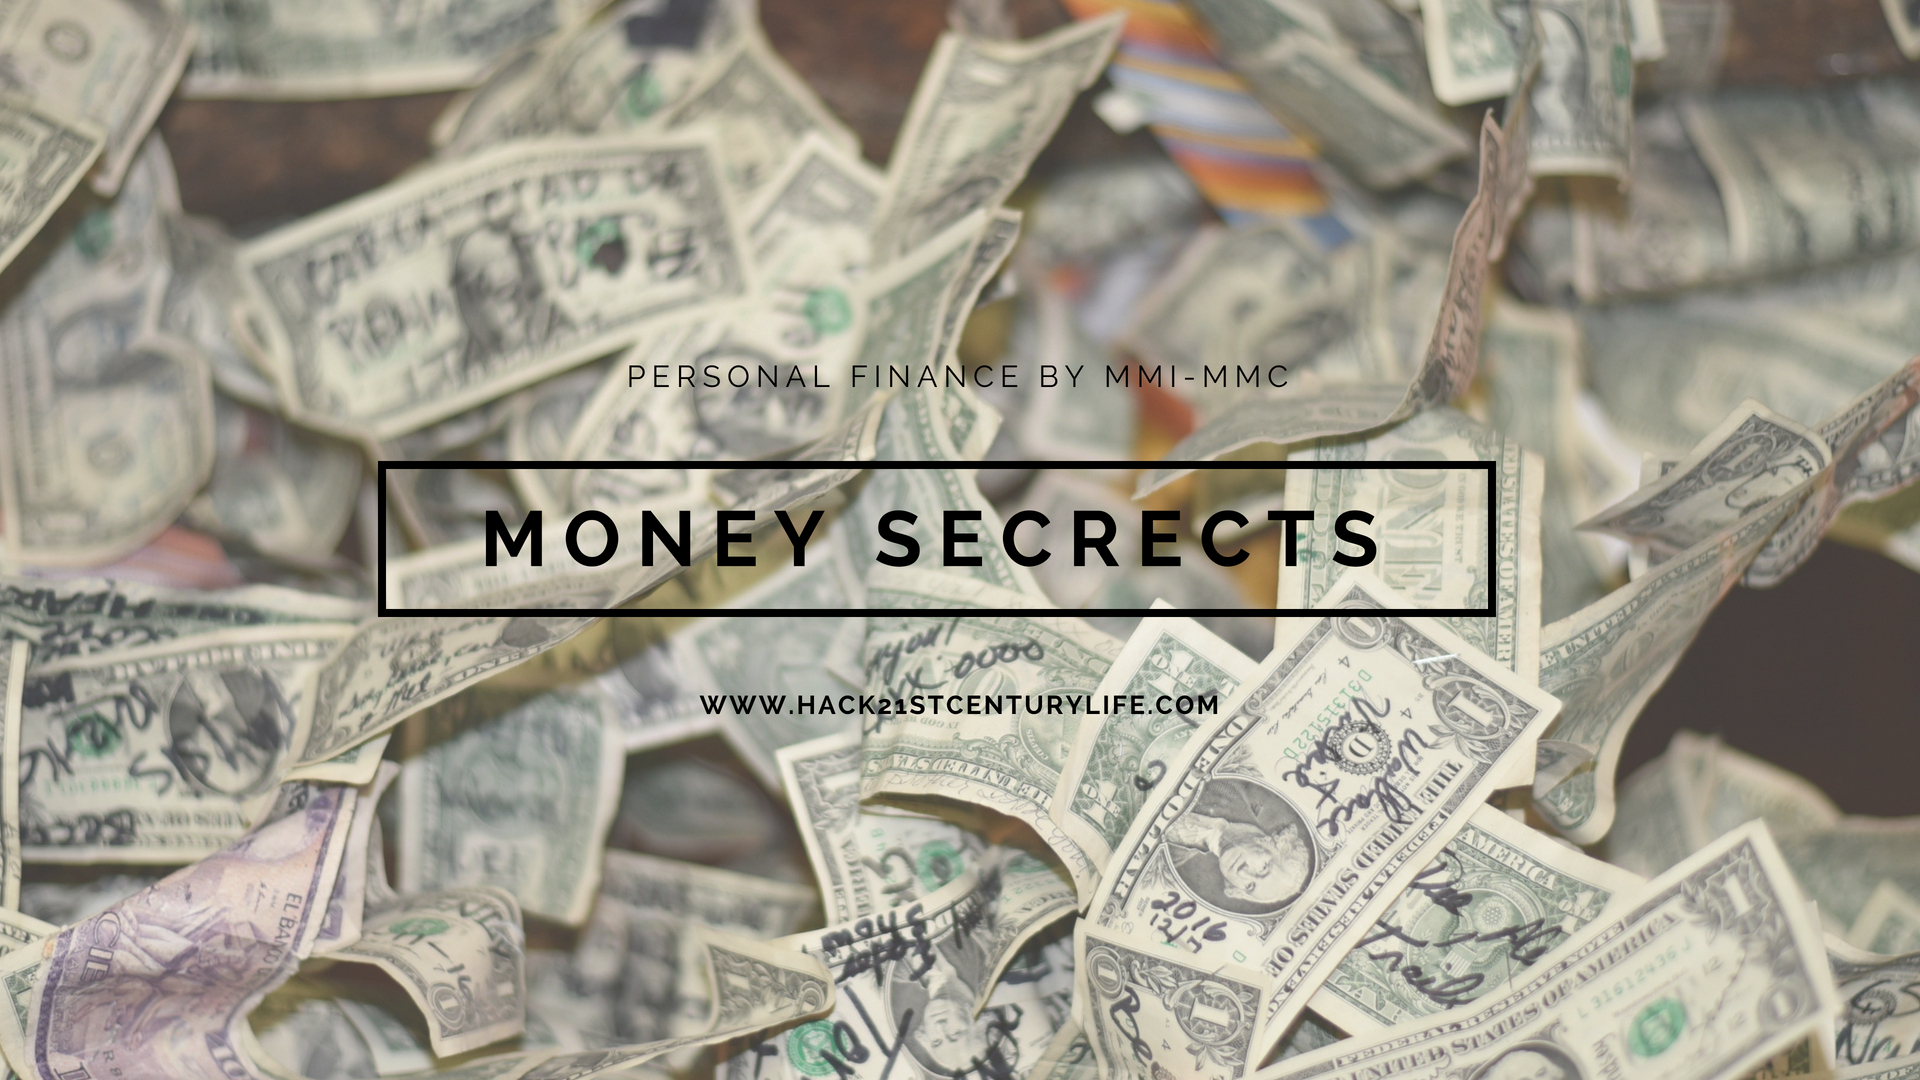 poster with image of dollars in backgrouund: Personal finance - three money secrets